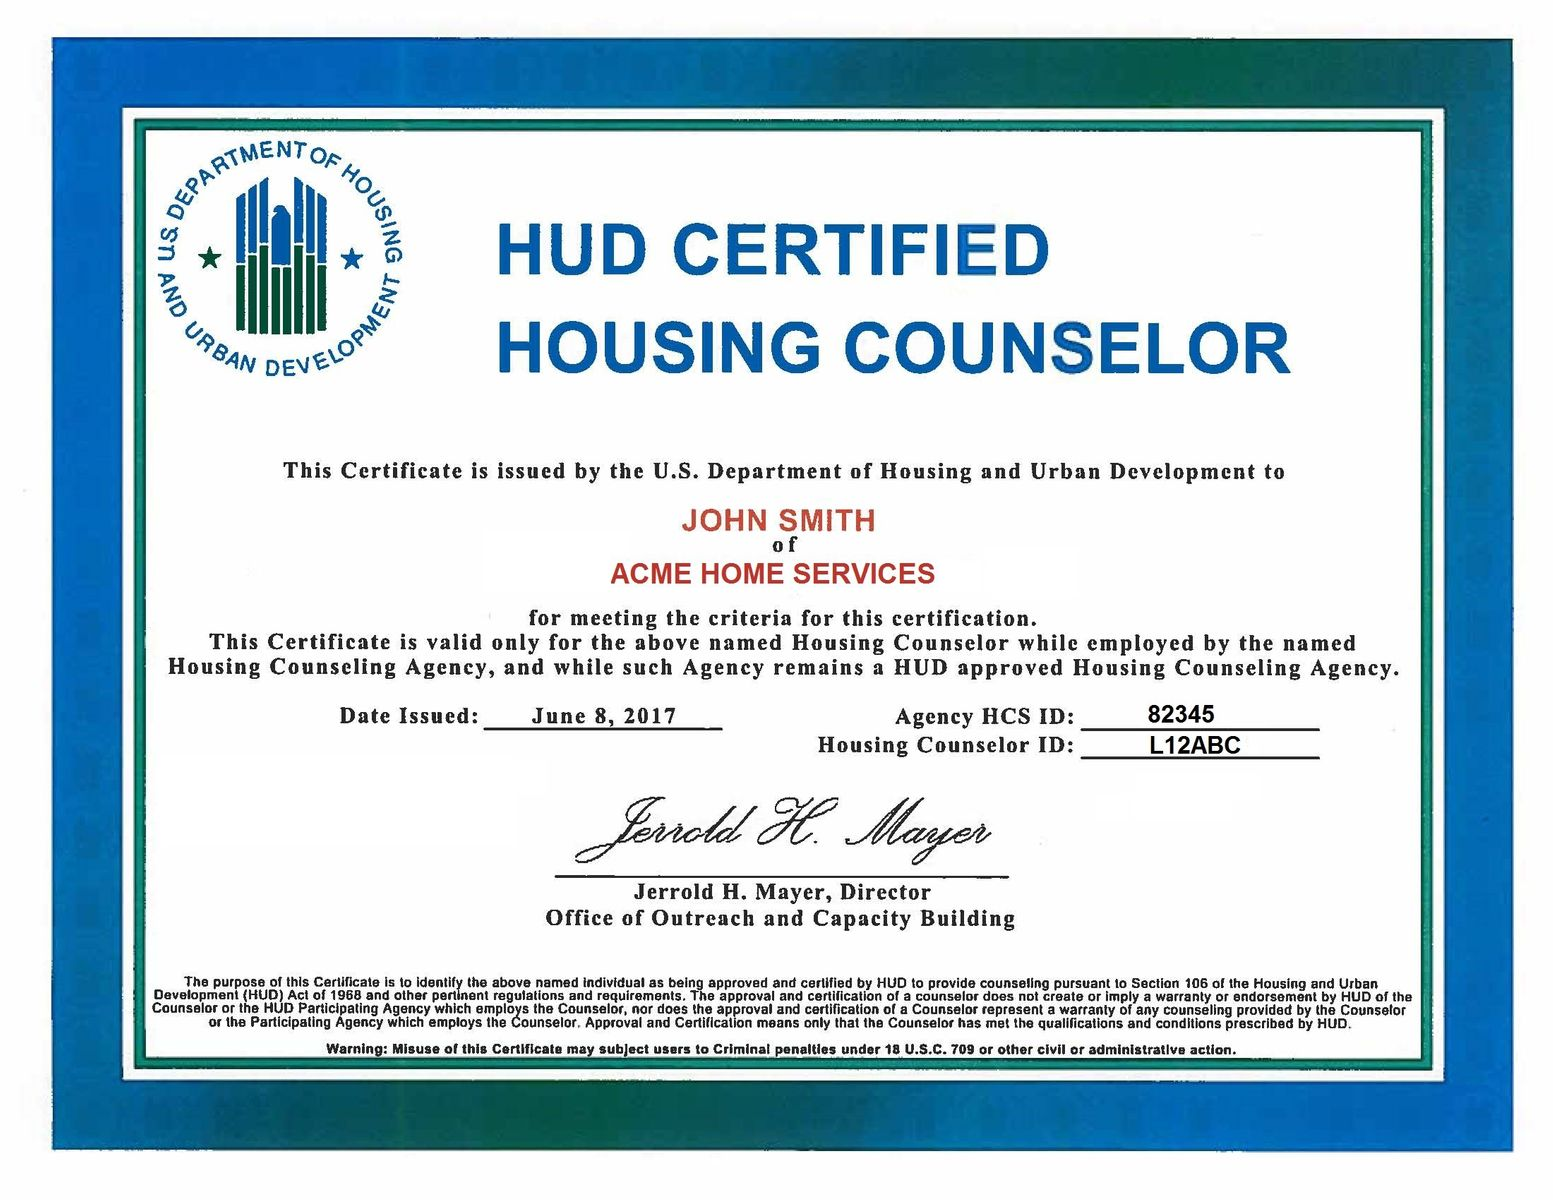 HUD Certified Housing Counselor Certificate